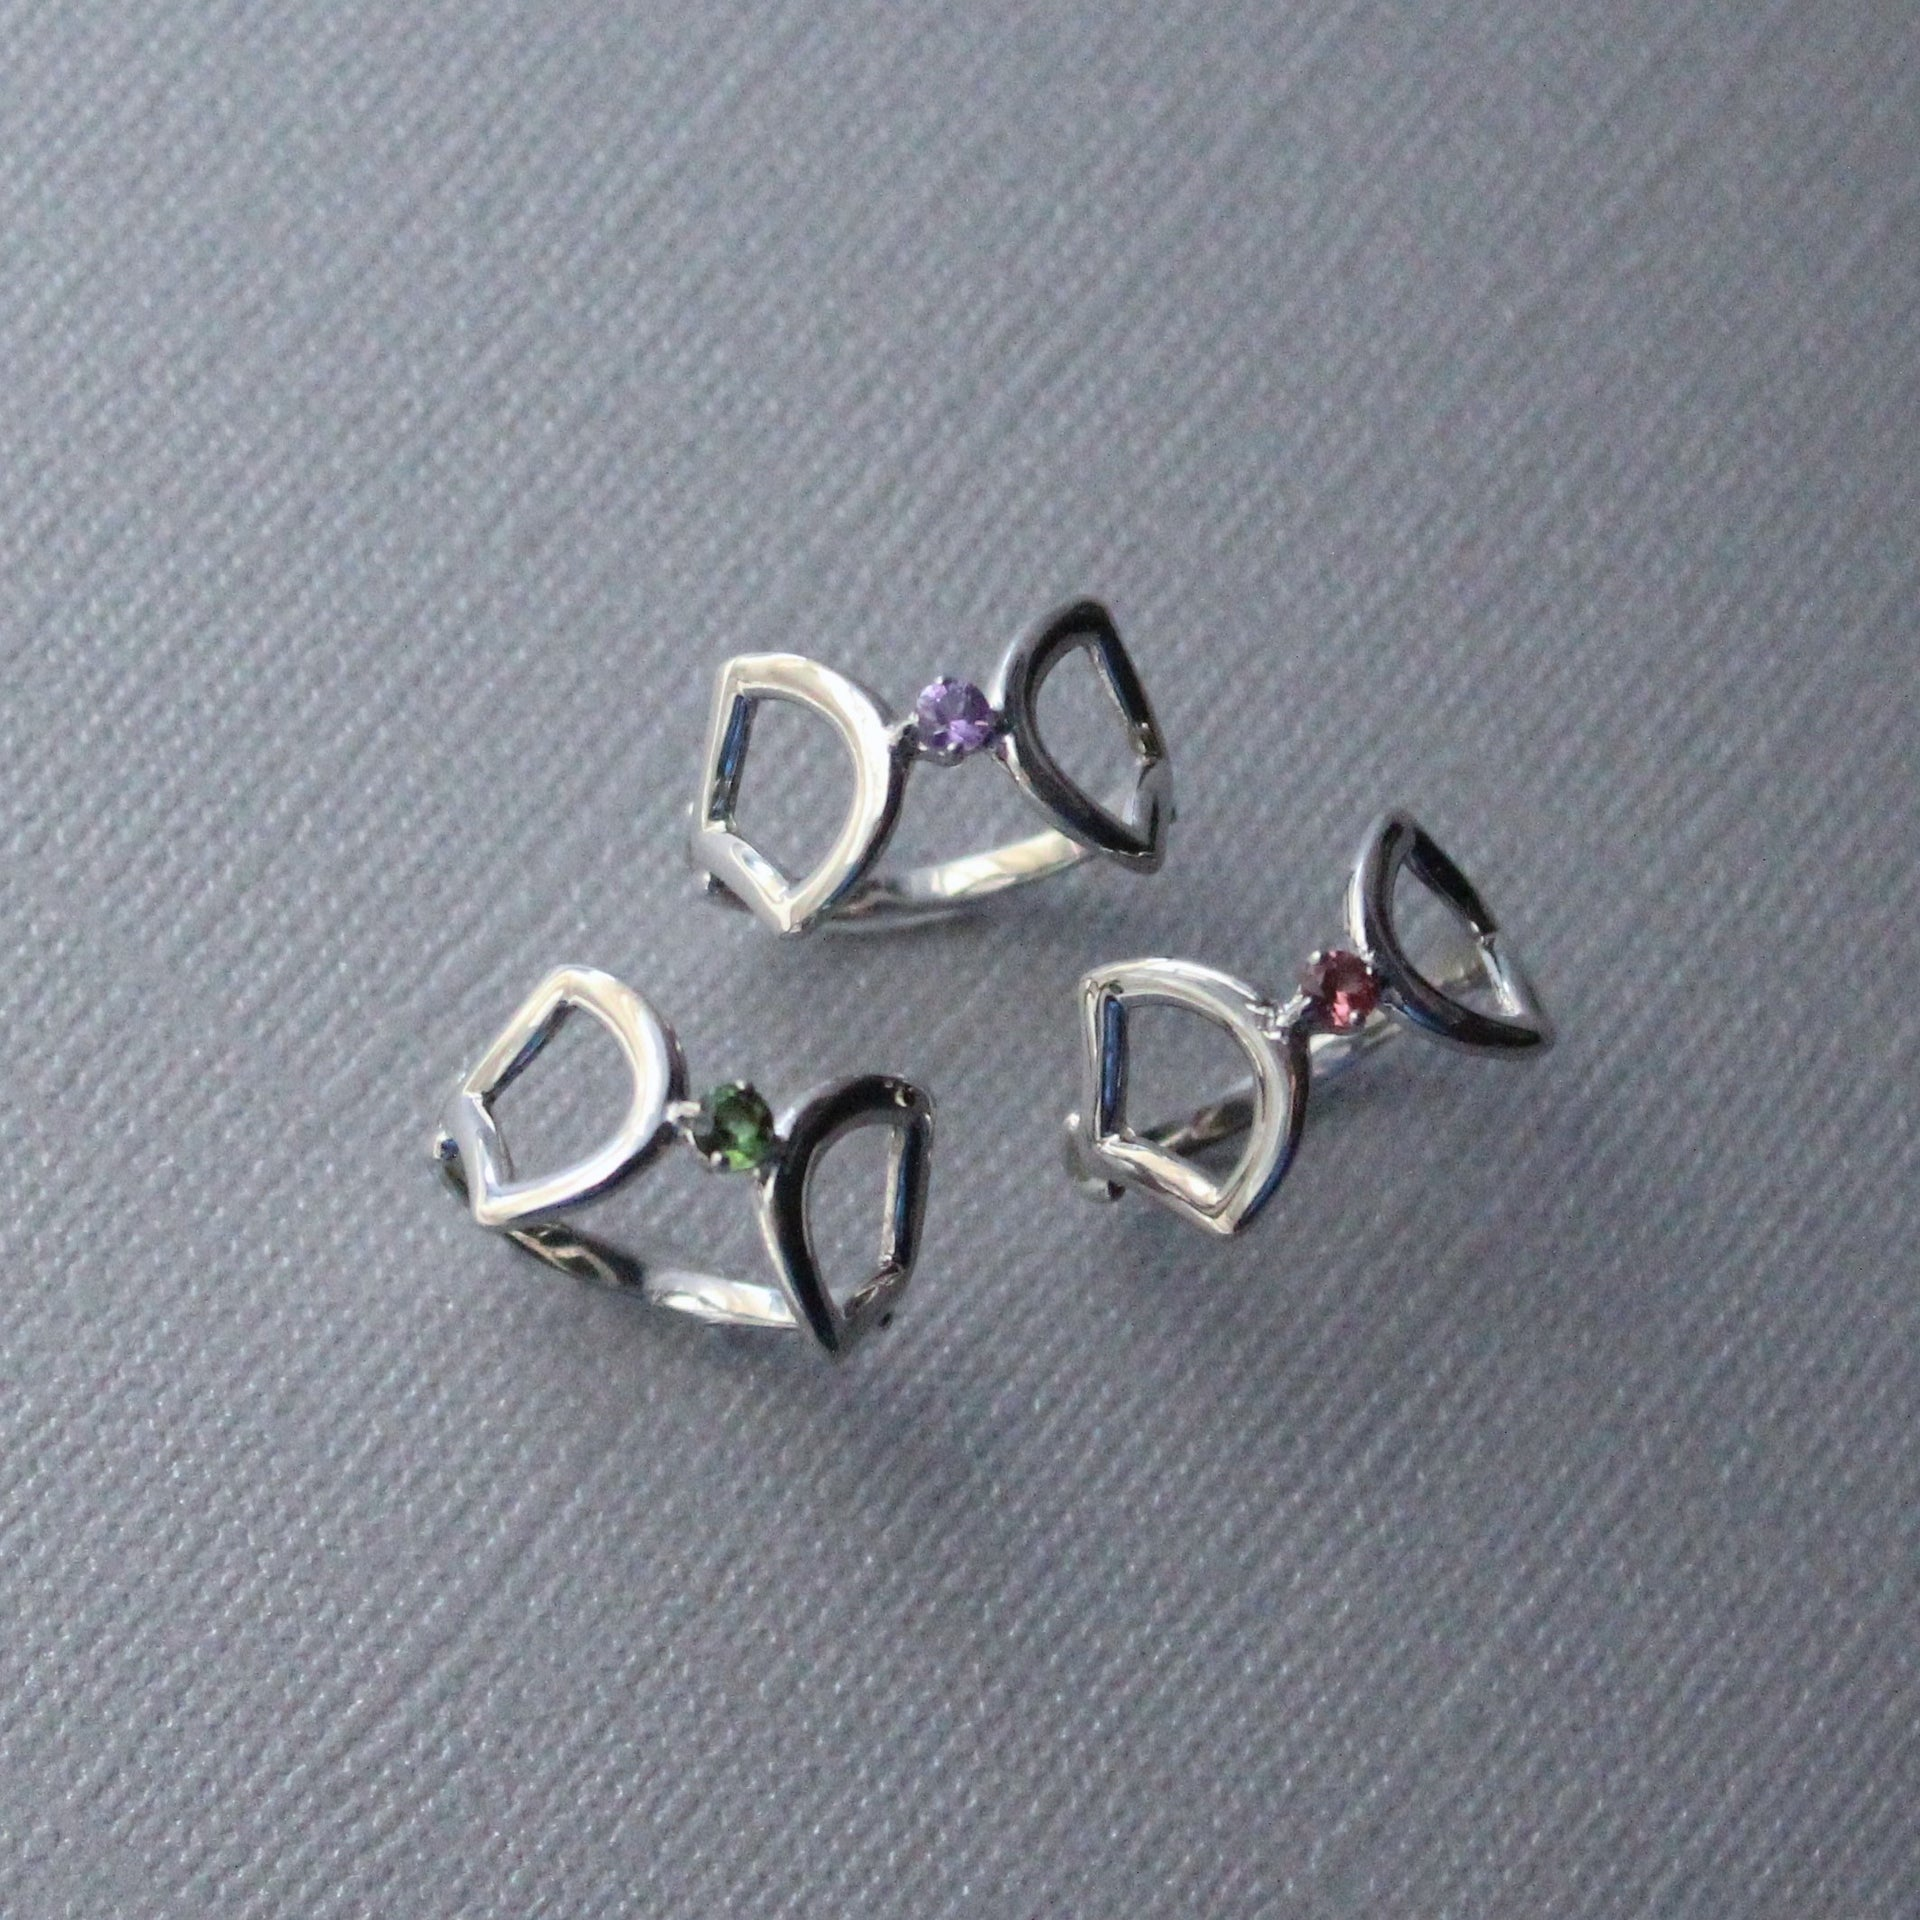 Papillon sterling silver ring with sapphires by KarenAsh New York